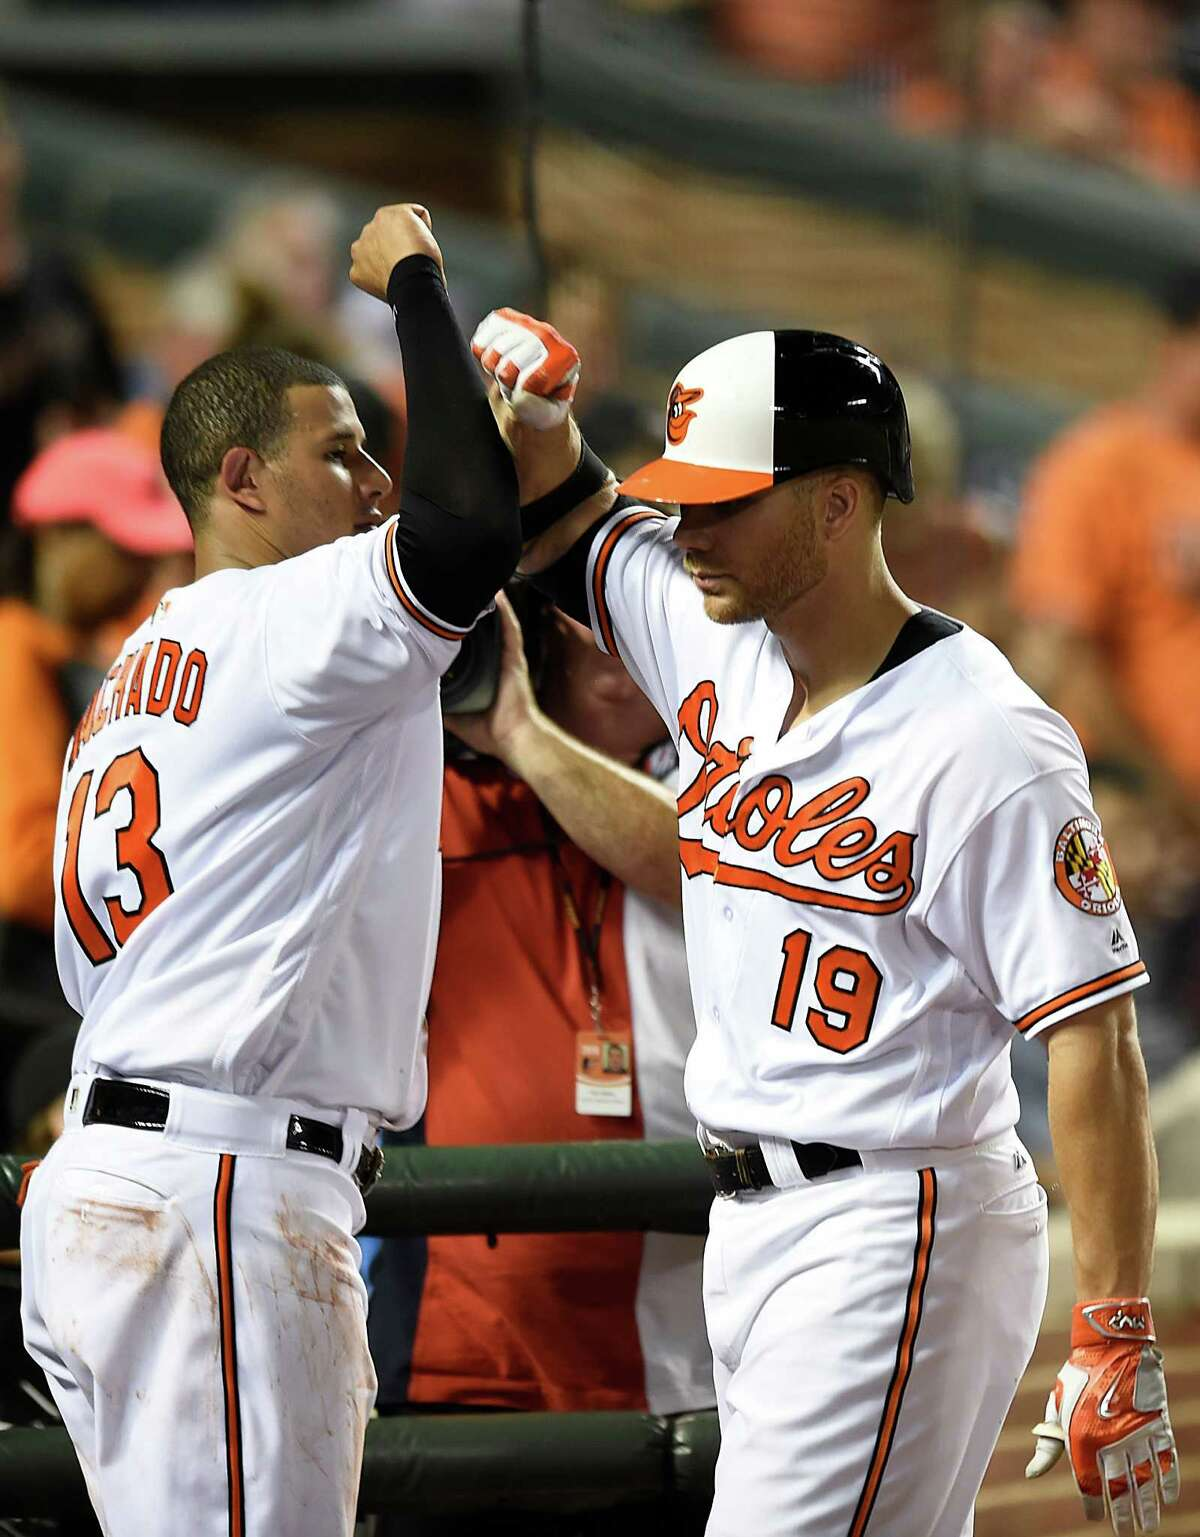 Baltimore Orioles' Chris Davis, right, is congratulated by Manny Machado after hitting a home run against the Houston Astros in the eighth inning of a baseball game, Thursday, Aug. 18, 2016, in Baltimore. It was Davis' second home run of the game. (AP Photo/Gail Burton)